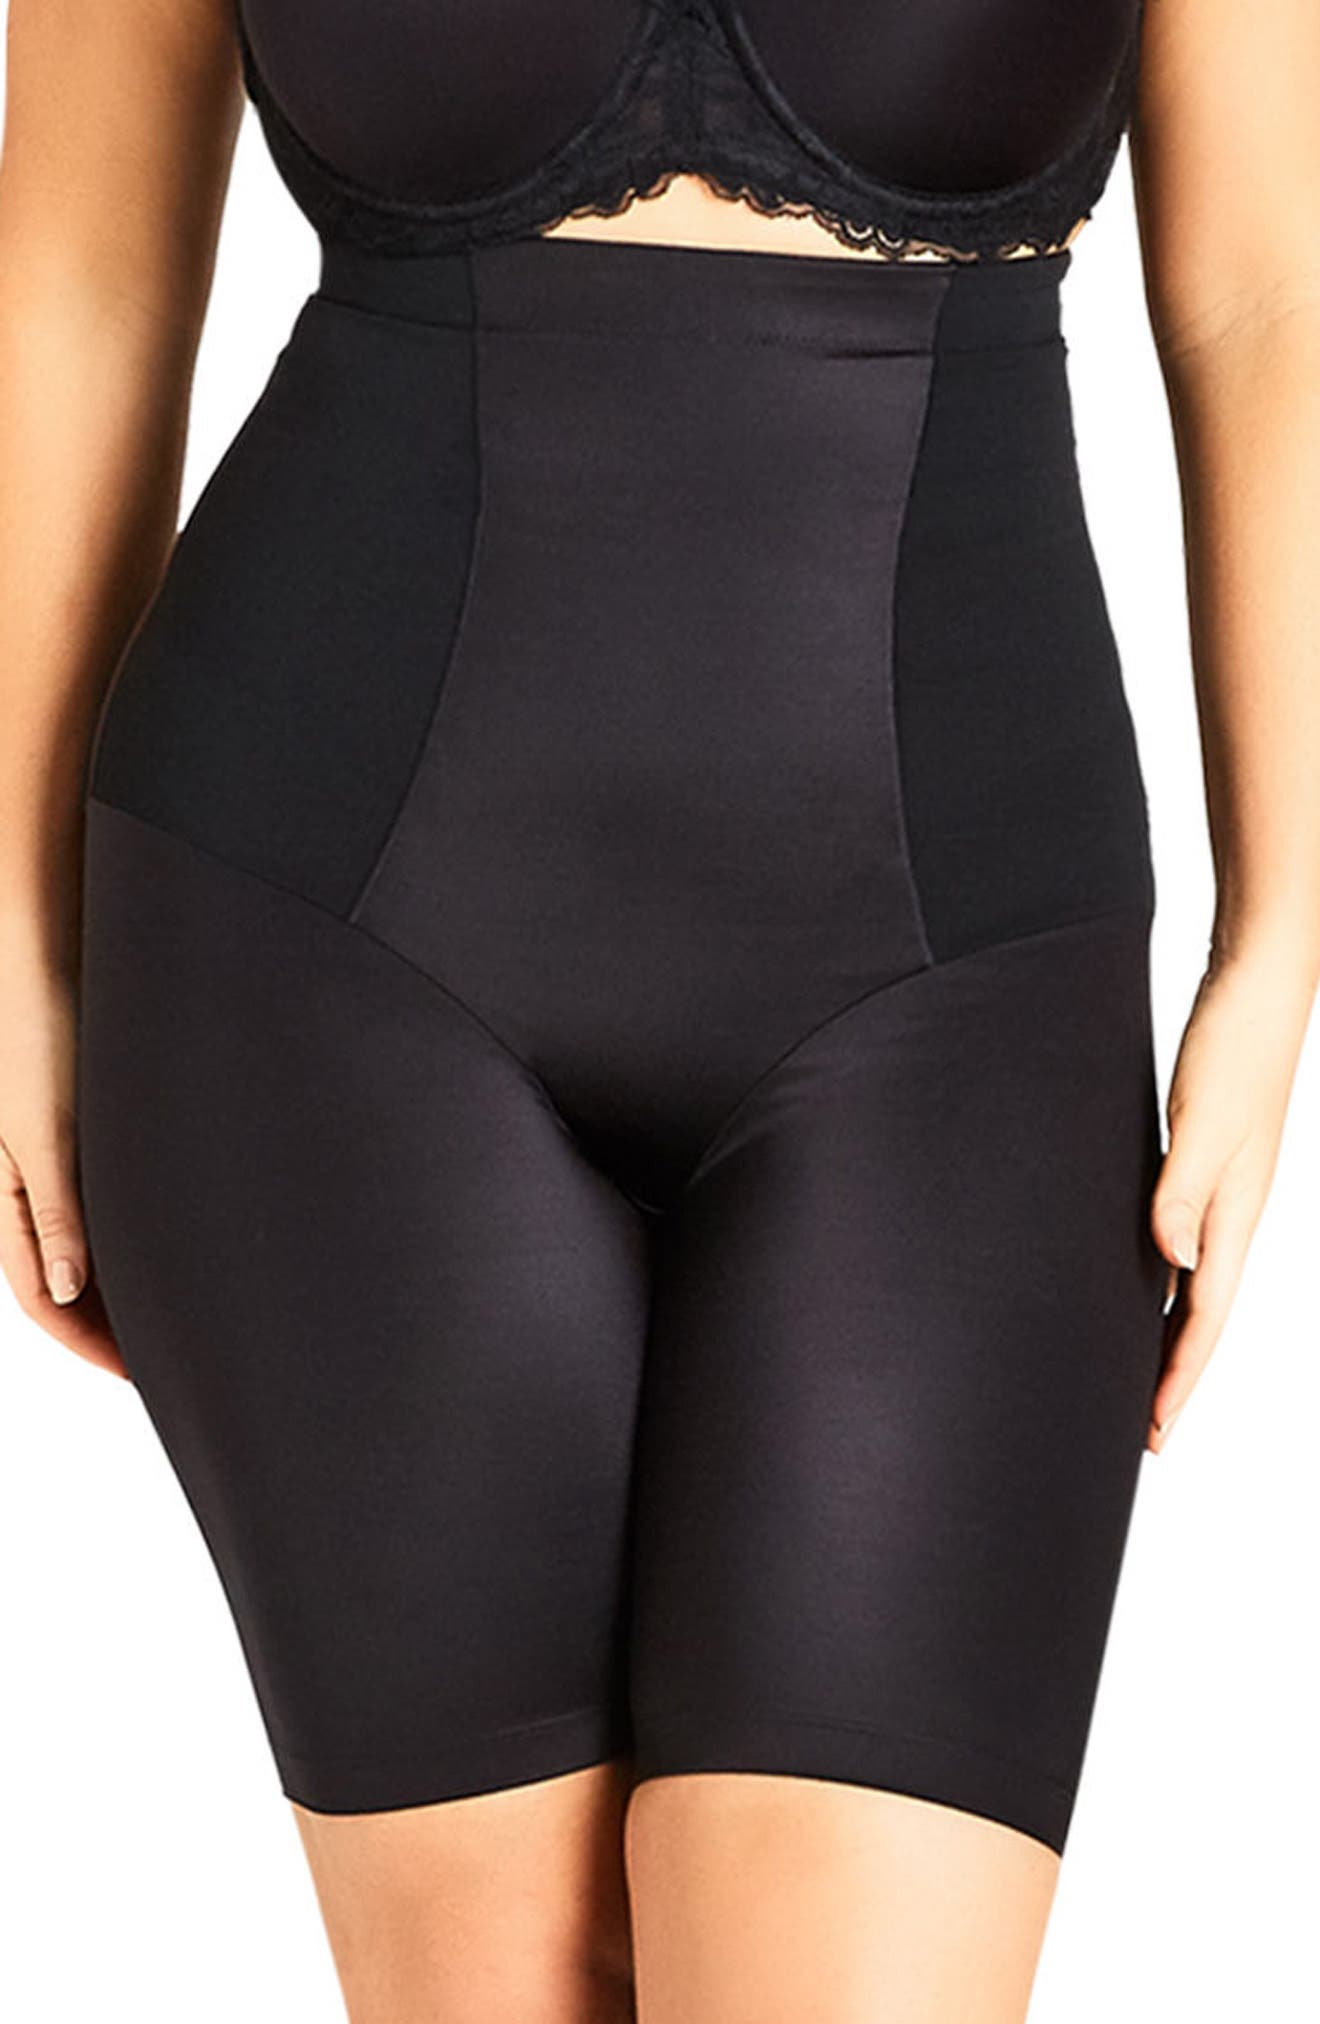 Main Image - City Chic Smooth & Chic Thigh Shaper (Plus Size)